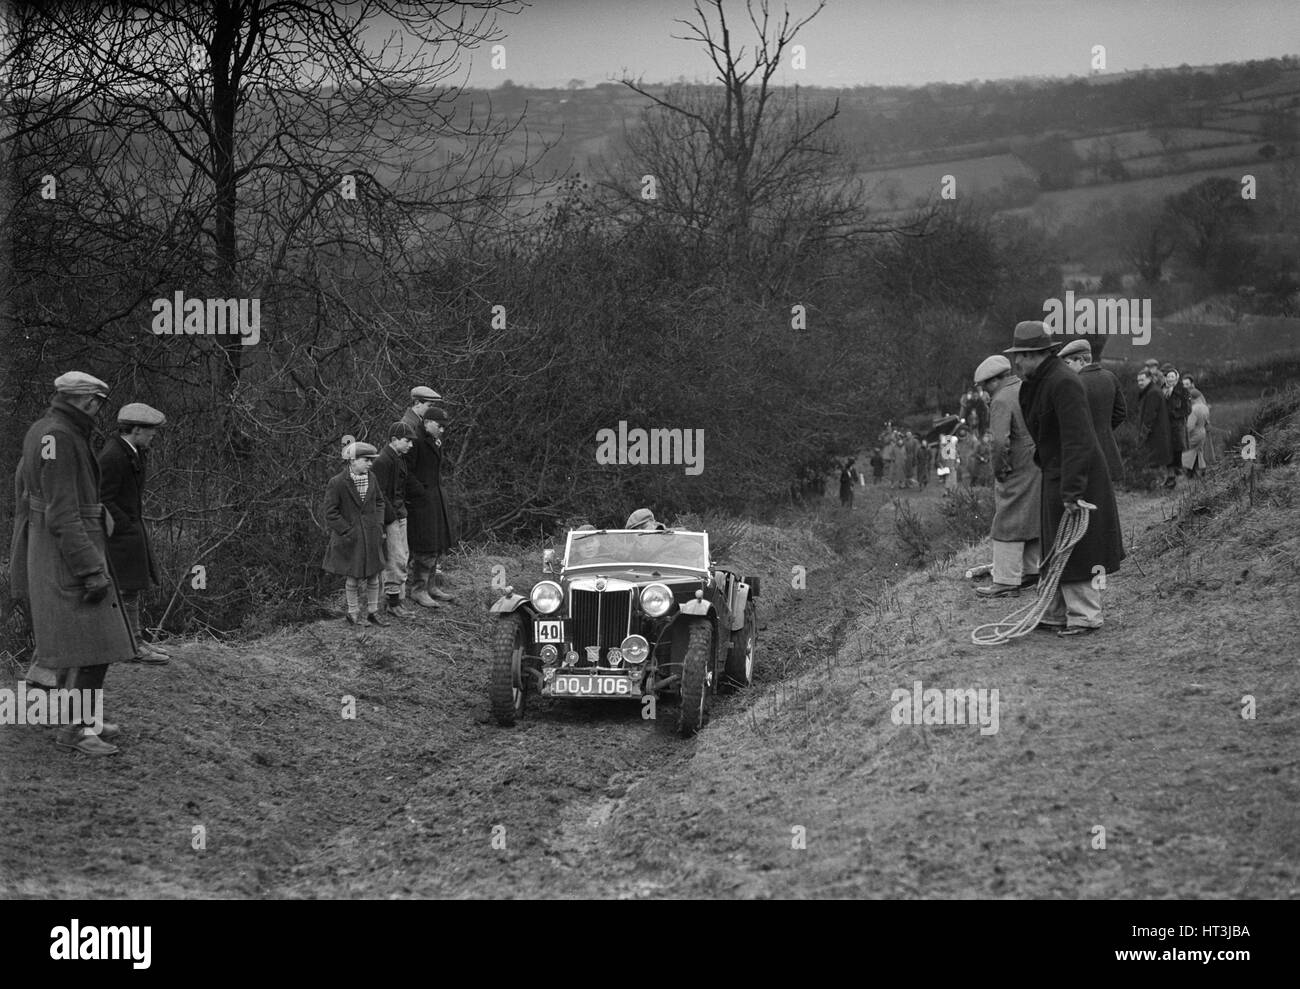 MG TA of F Wallace competing in the MG Car Club Midland Centre Trial, 1938. Artist: Bill Brunell. - Stock Image